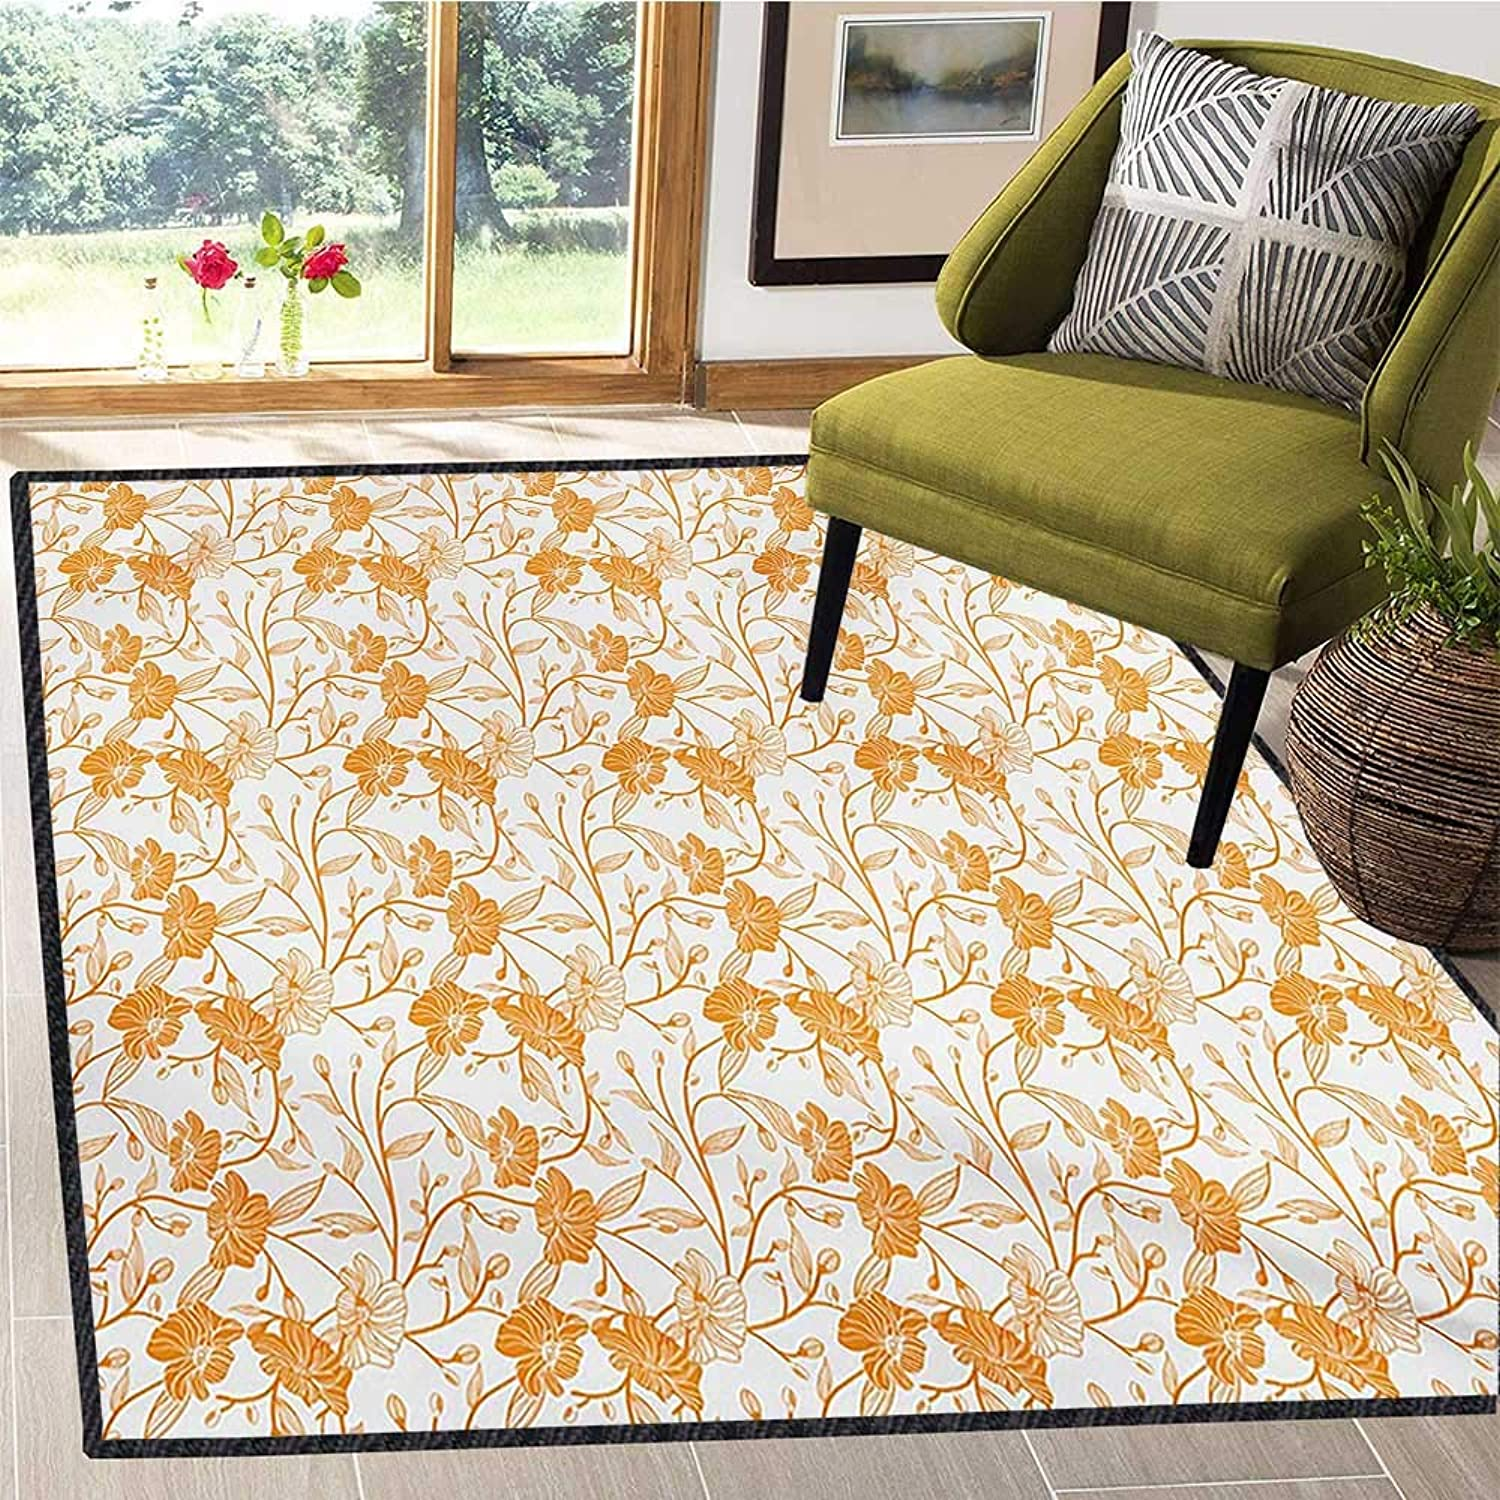 orange and White, Door Mats for Inside, Abstract Drawing of Flowering Stems Blooming Buds Nature Coming Alive, Door Mat Increase 4x6 Ft orange White